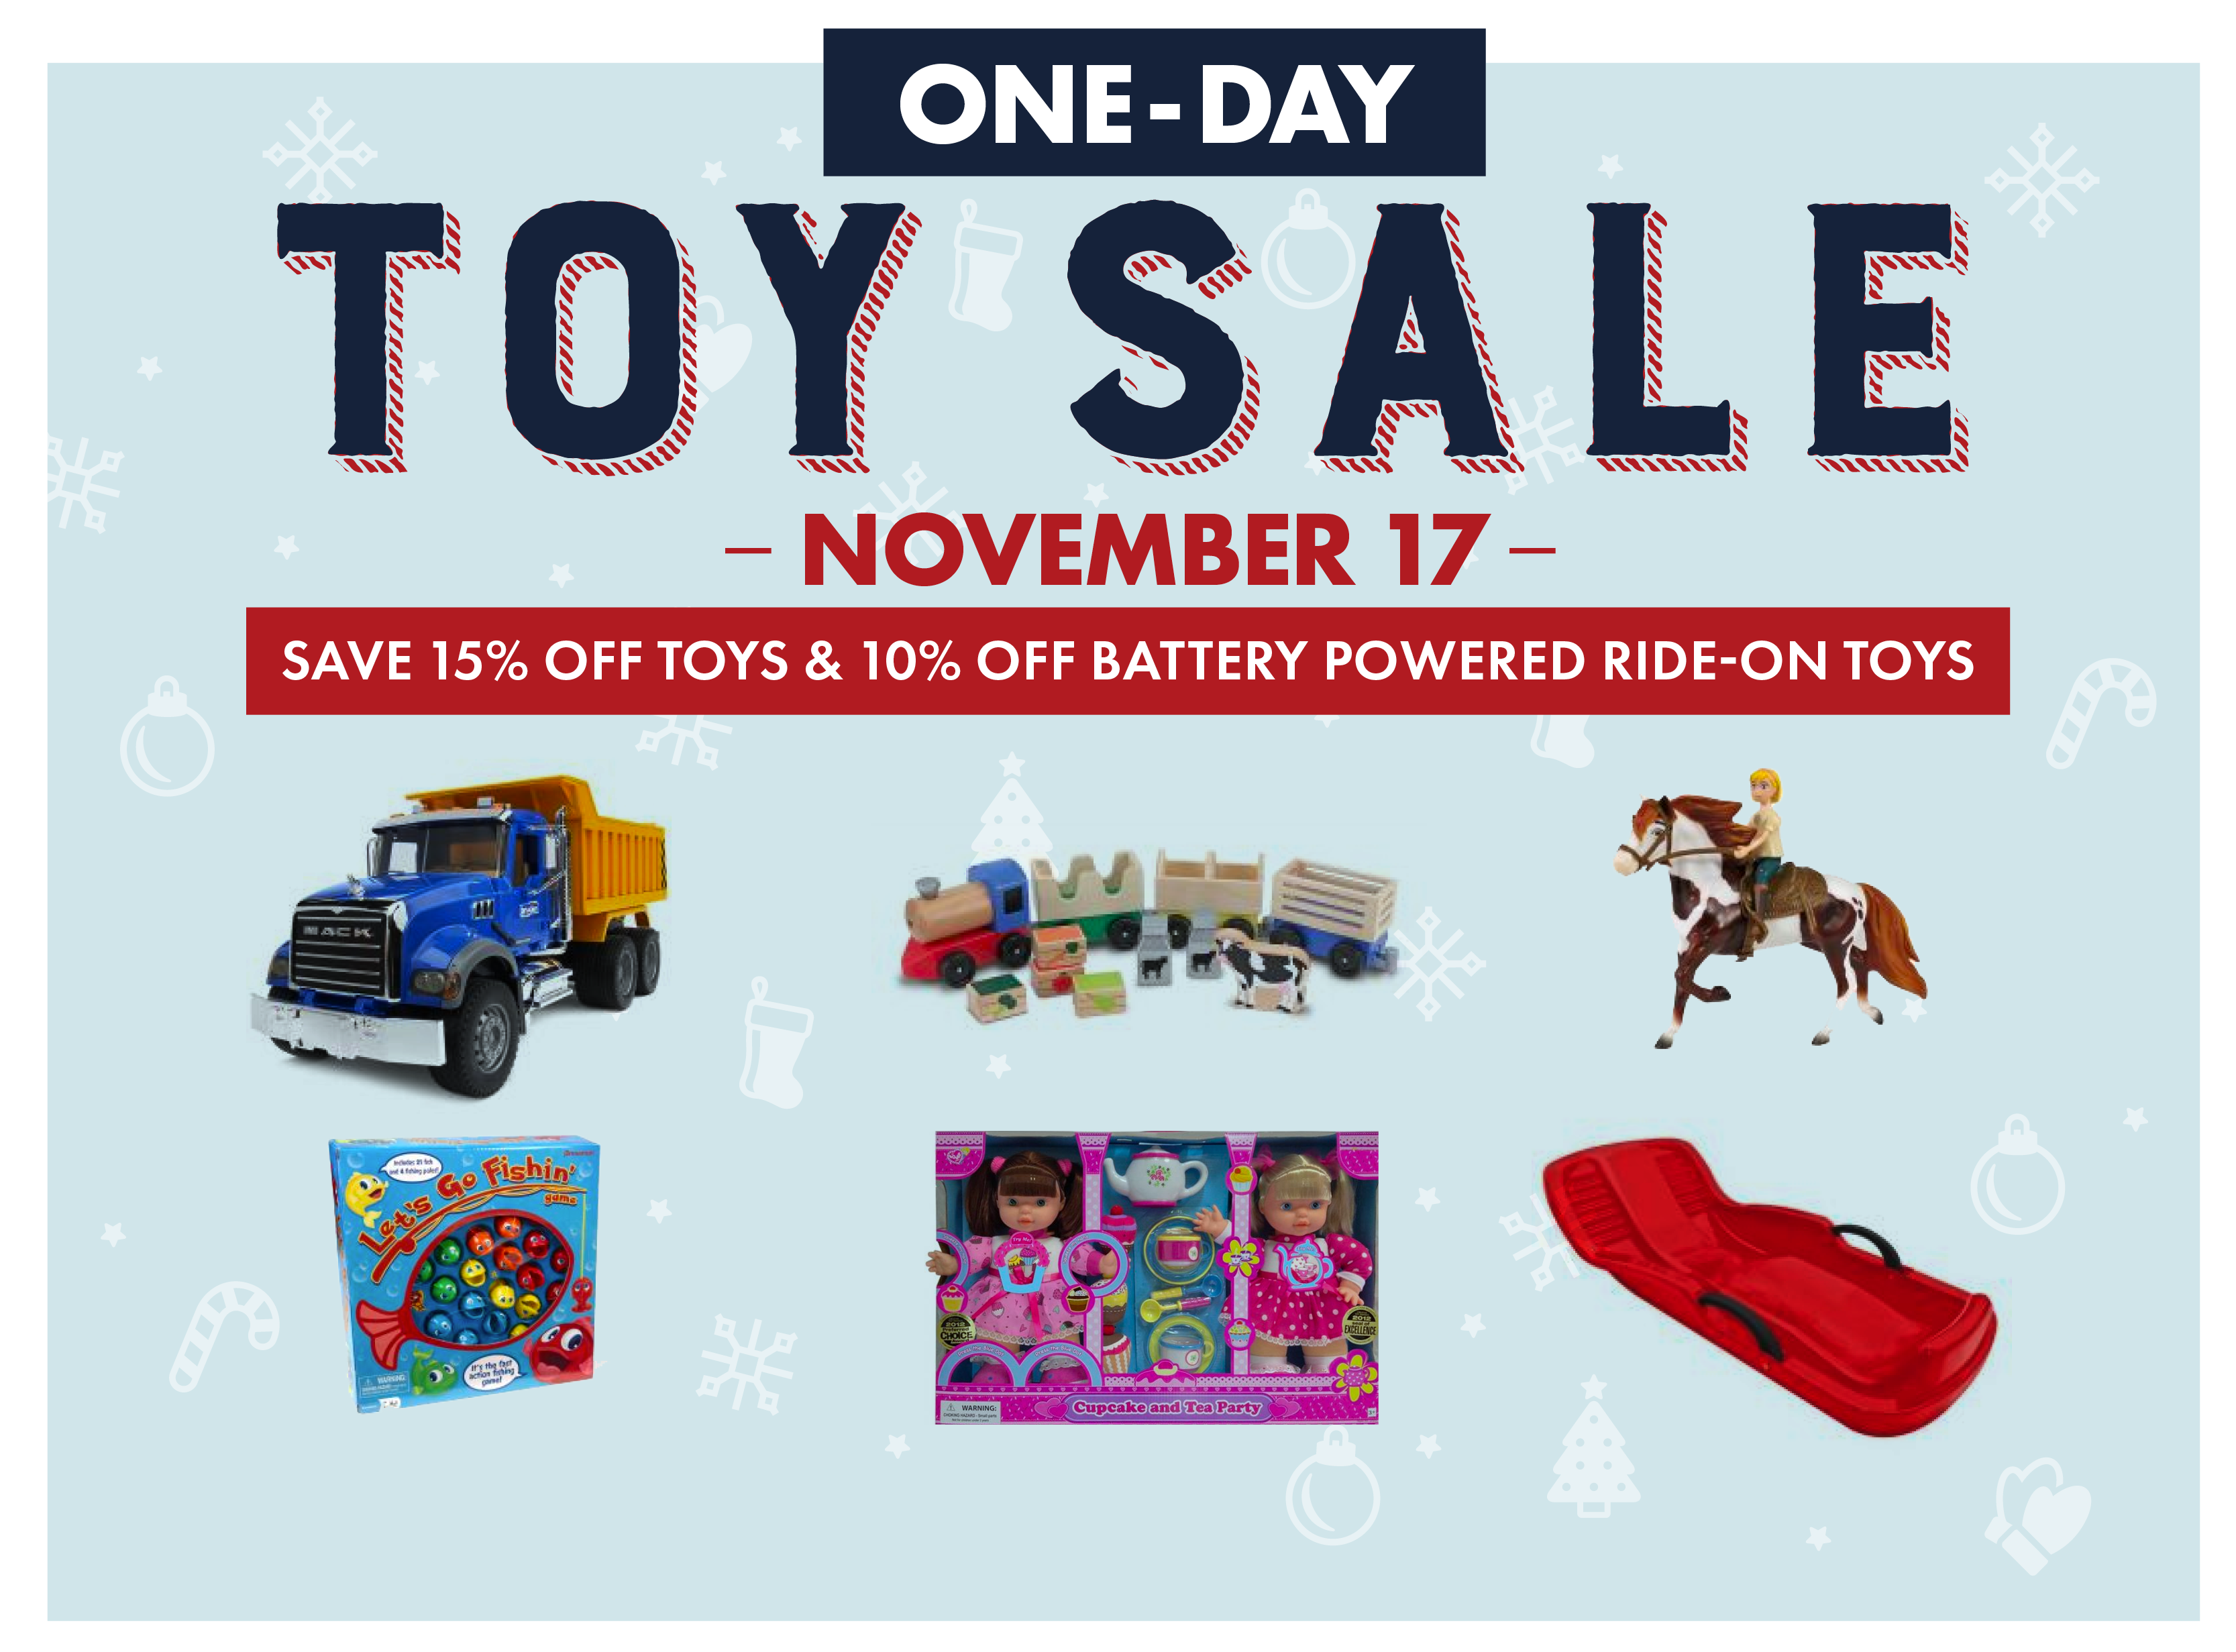 One-day Toy Sale Save Toys Ride-on Tractor Melissa and Doug